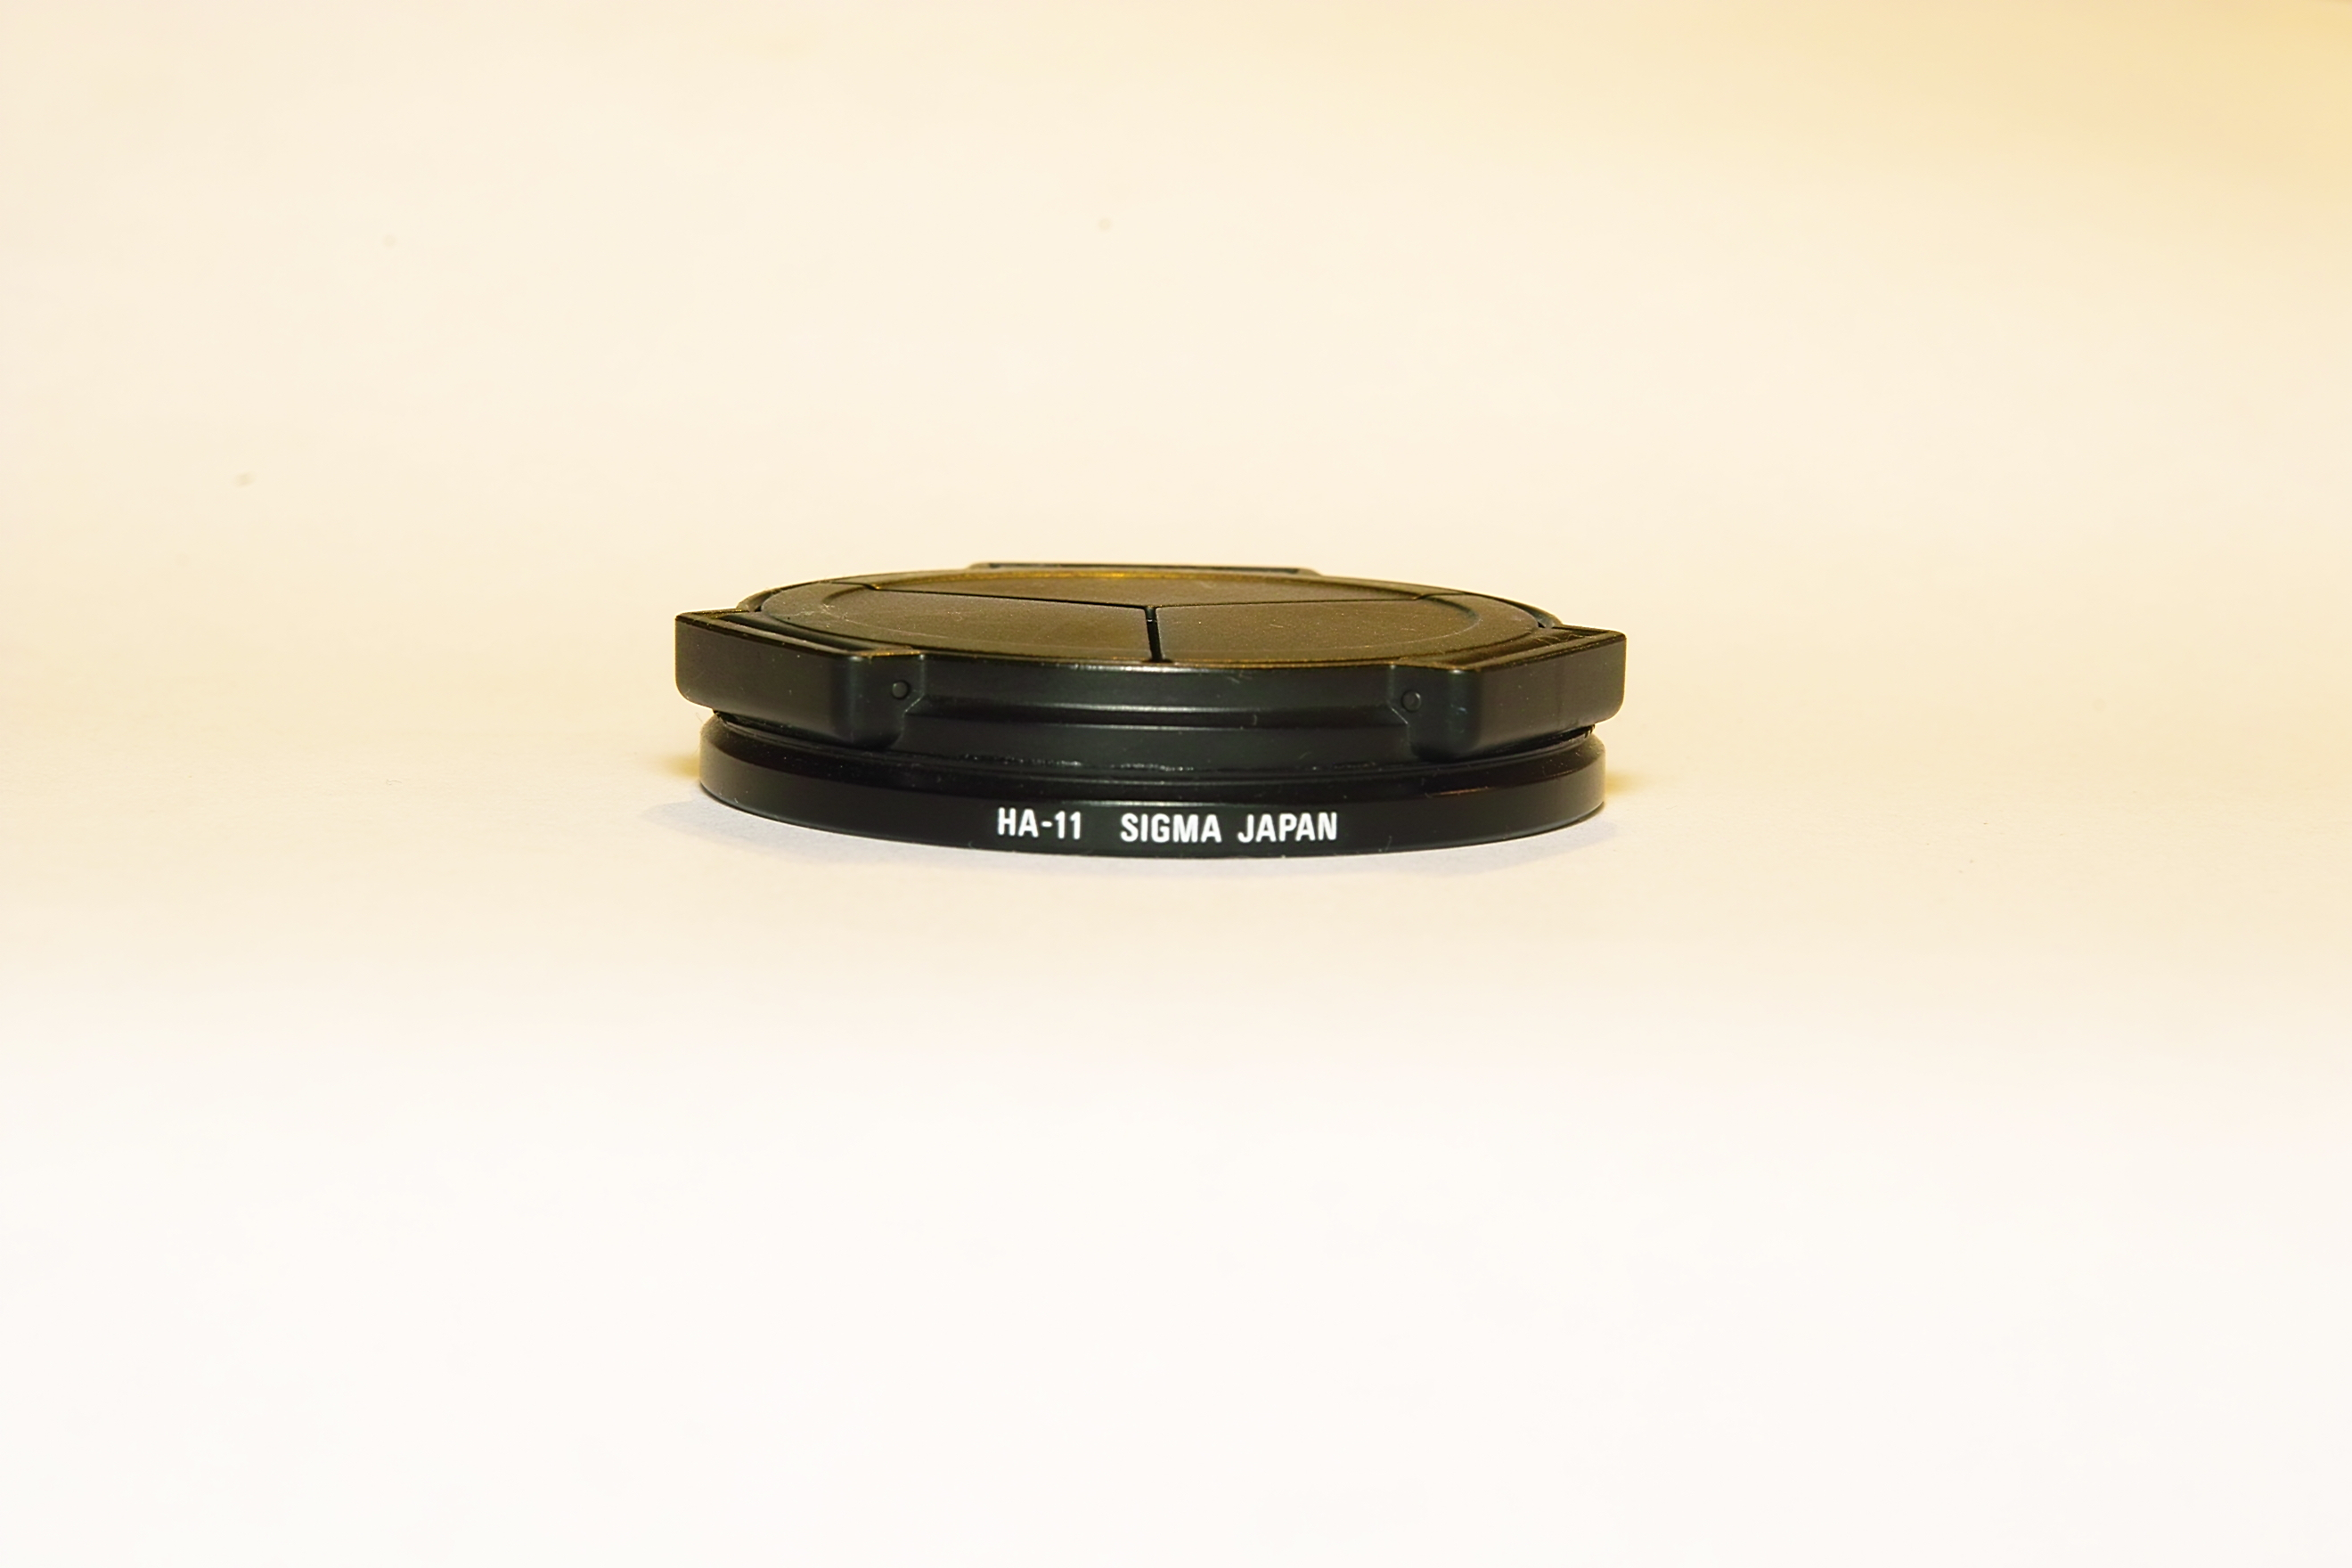 Ricoh LC-1 Auto Lens Cap attached to Sigmas HA-11 ring.